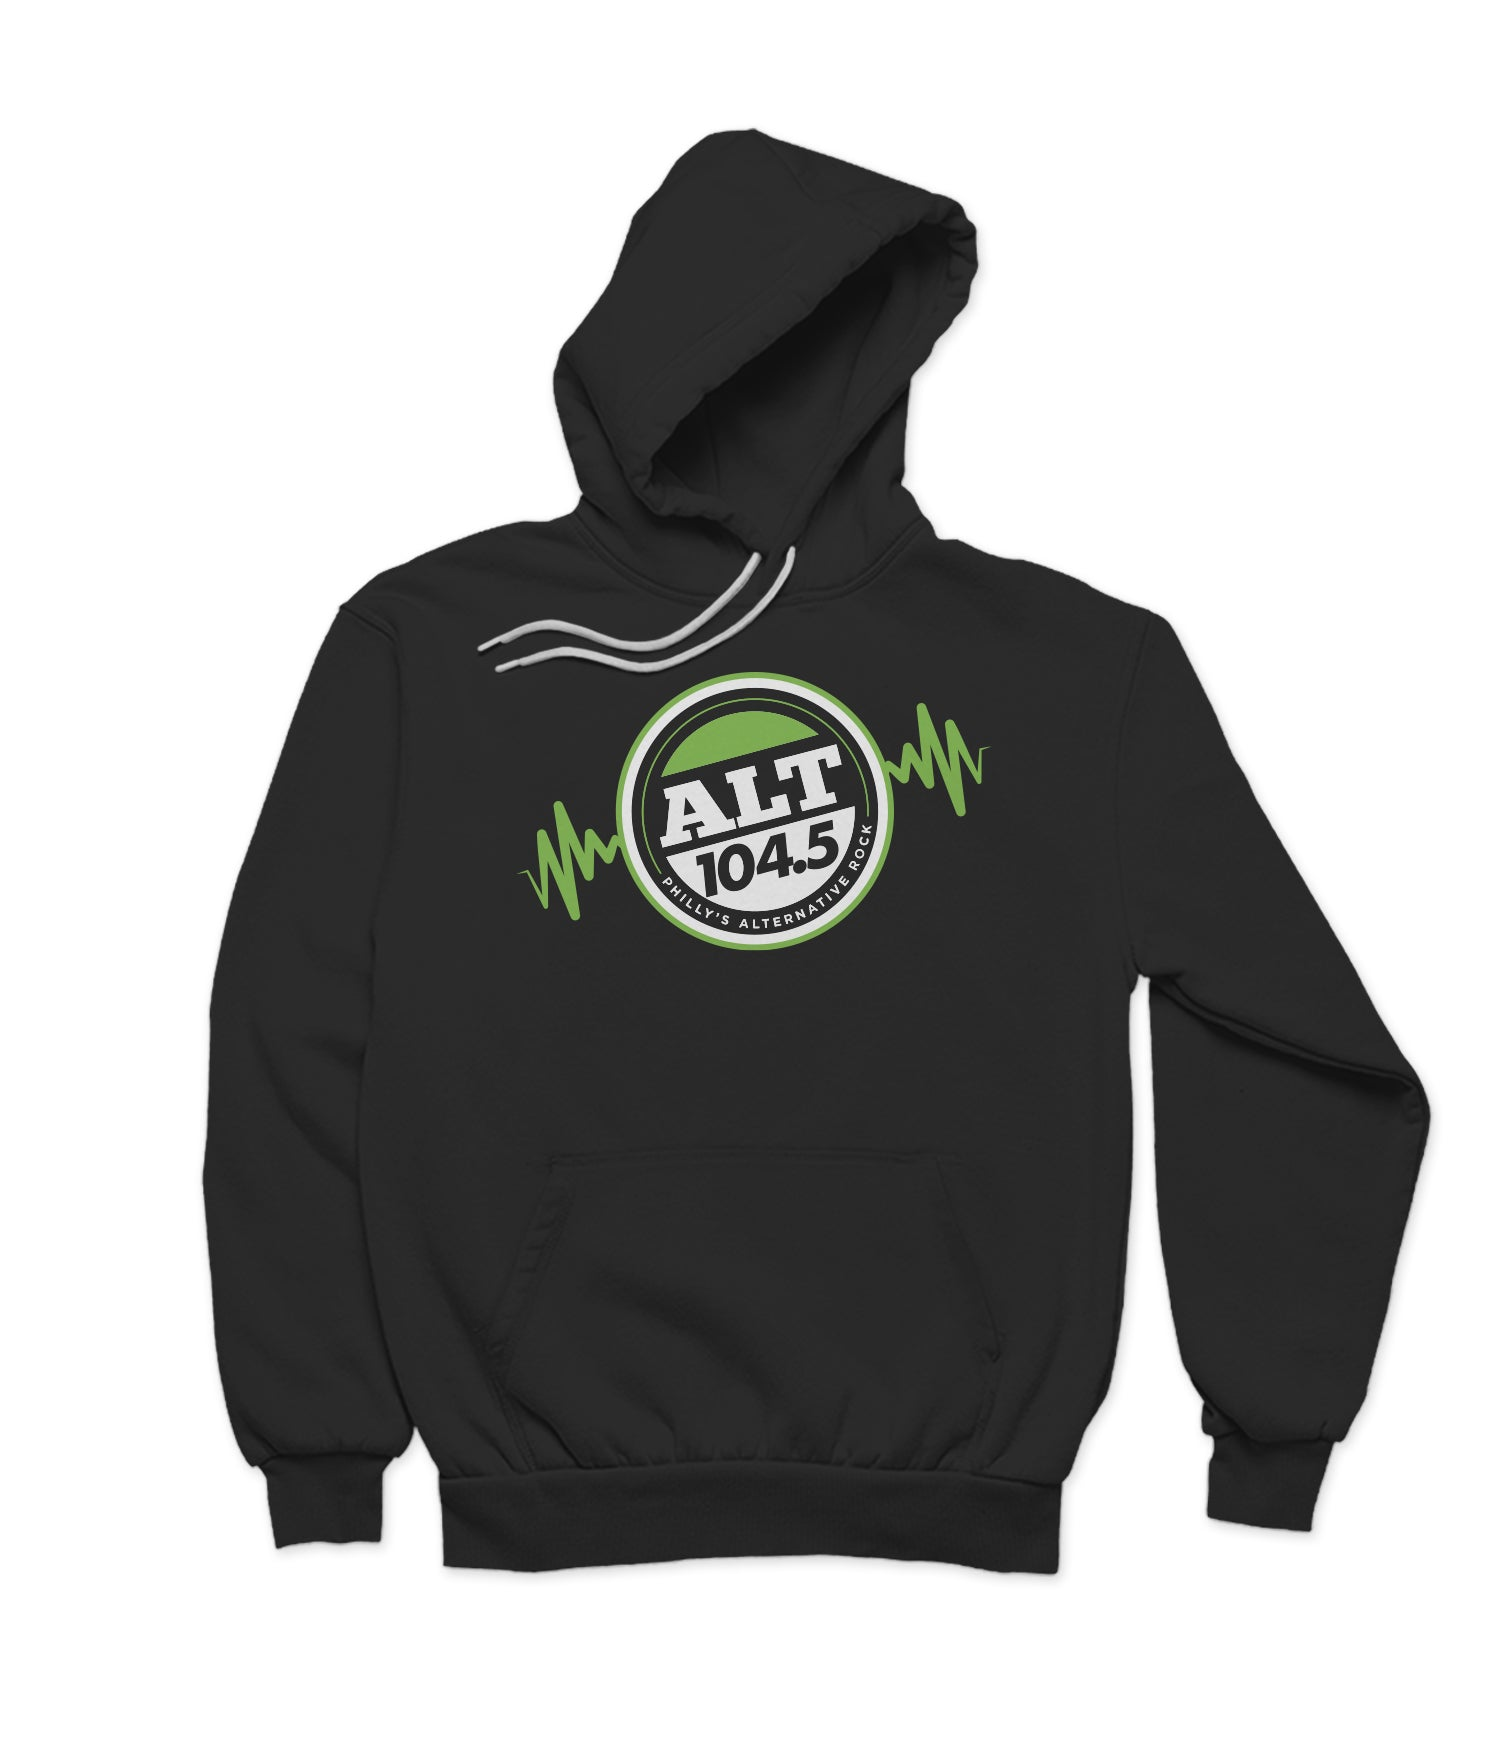 Philly 104.5 Hoodie